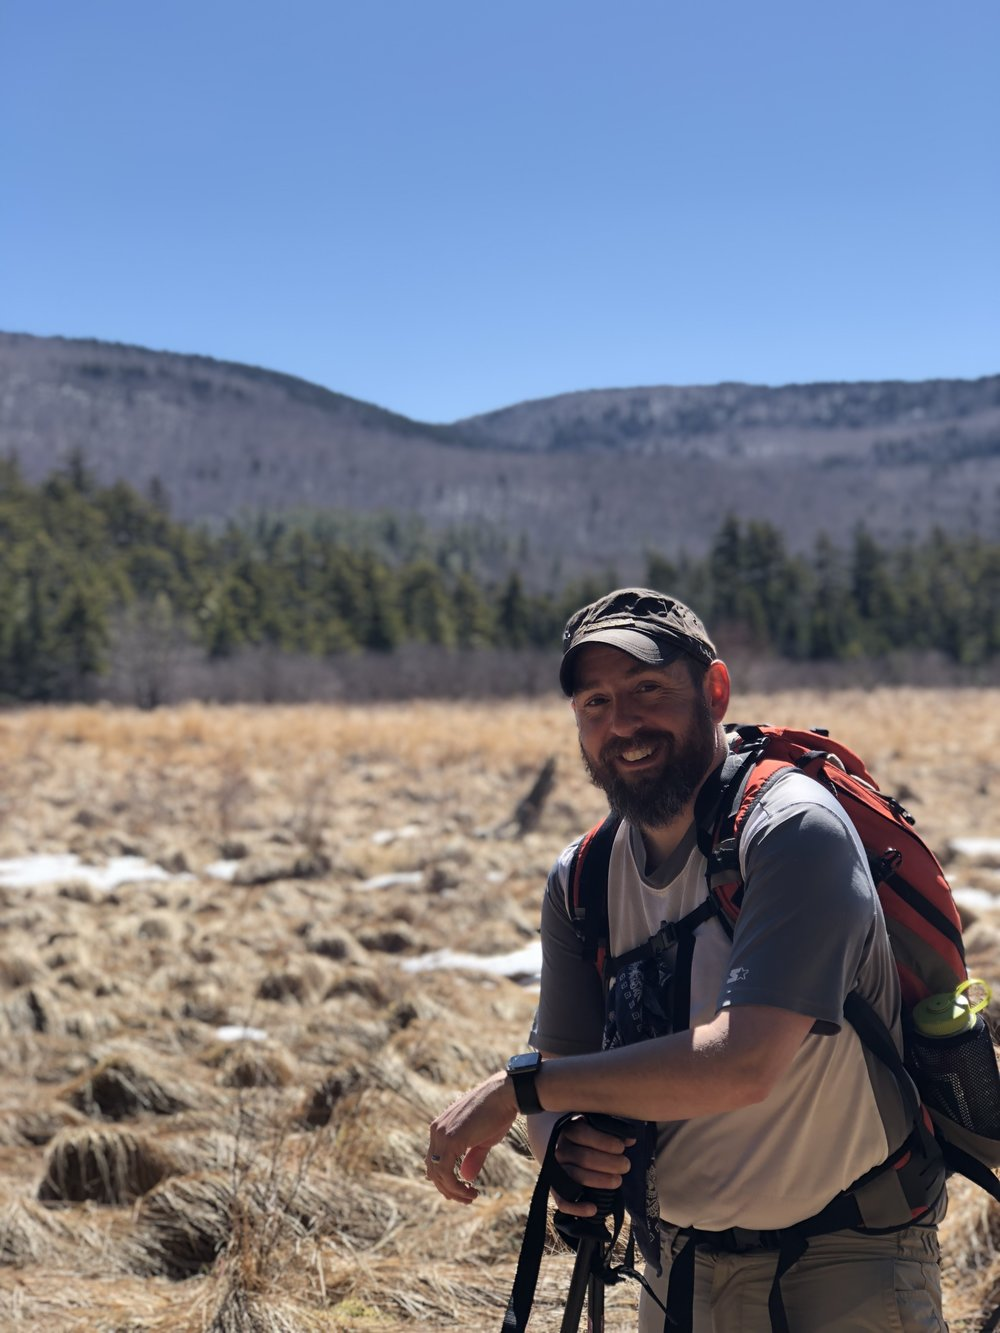 Moe Lemire is the owner and lead guide of Hike On Guides